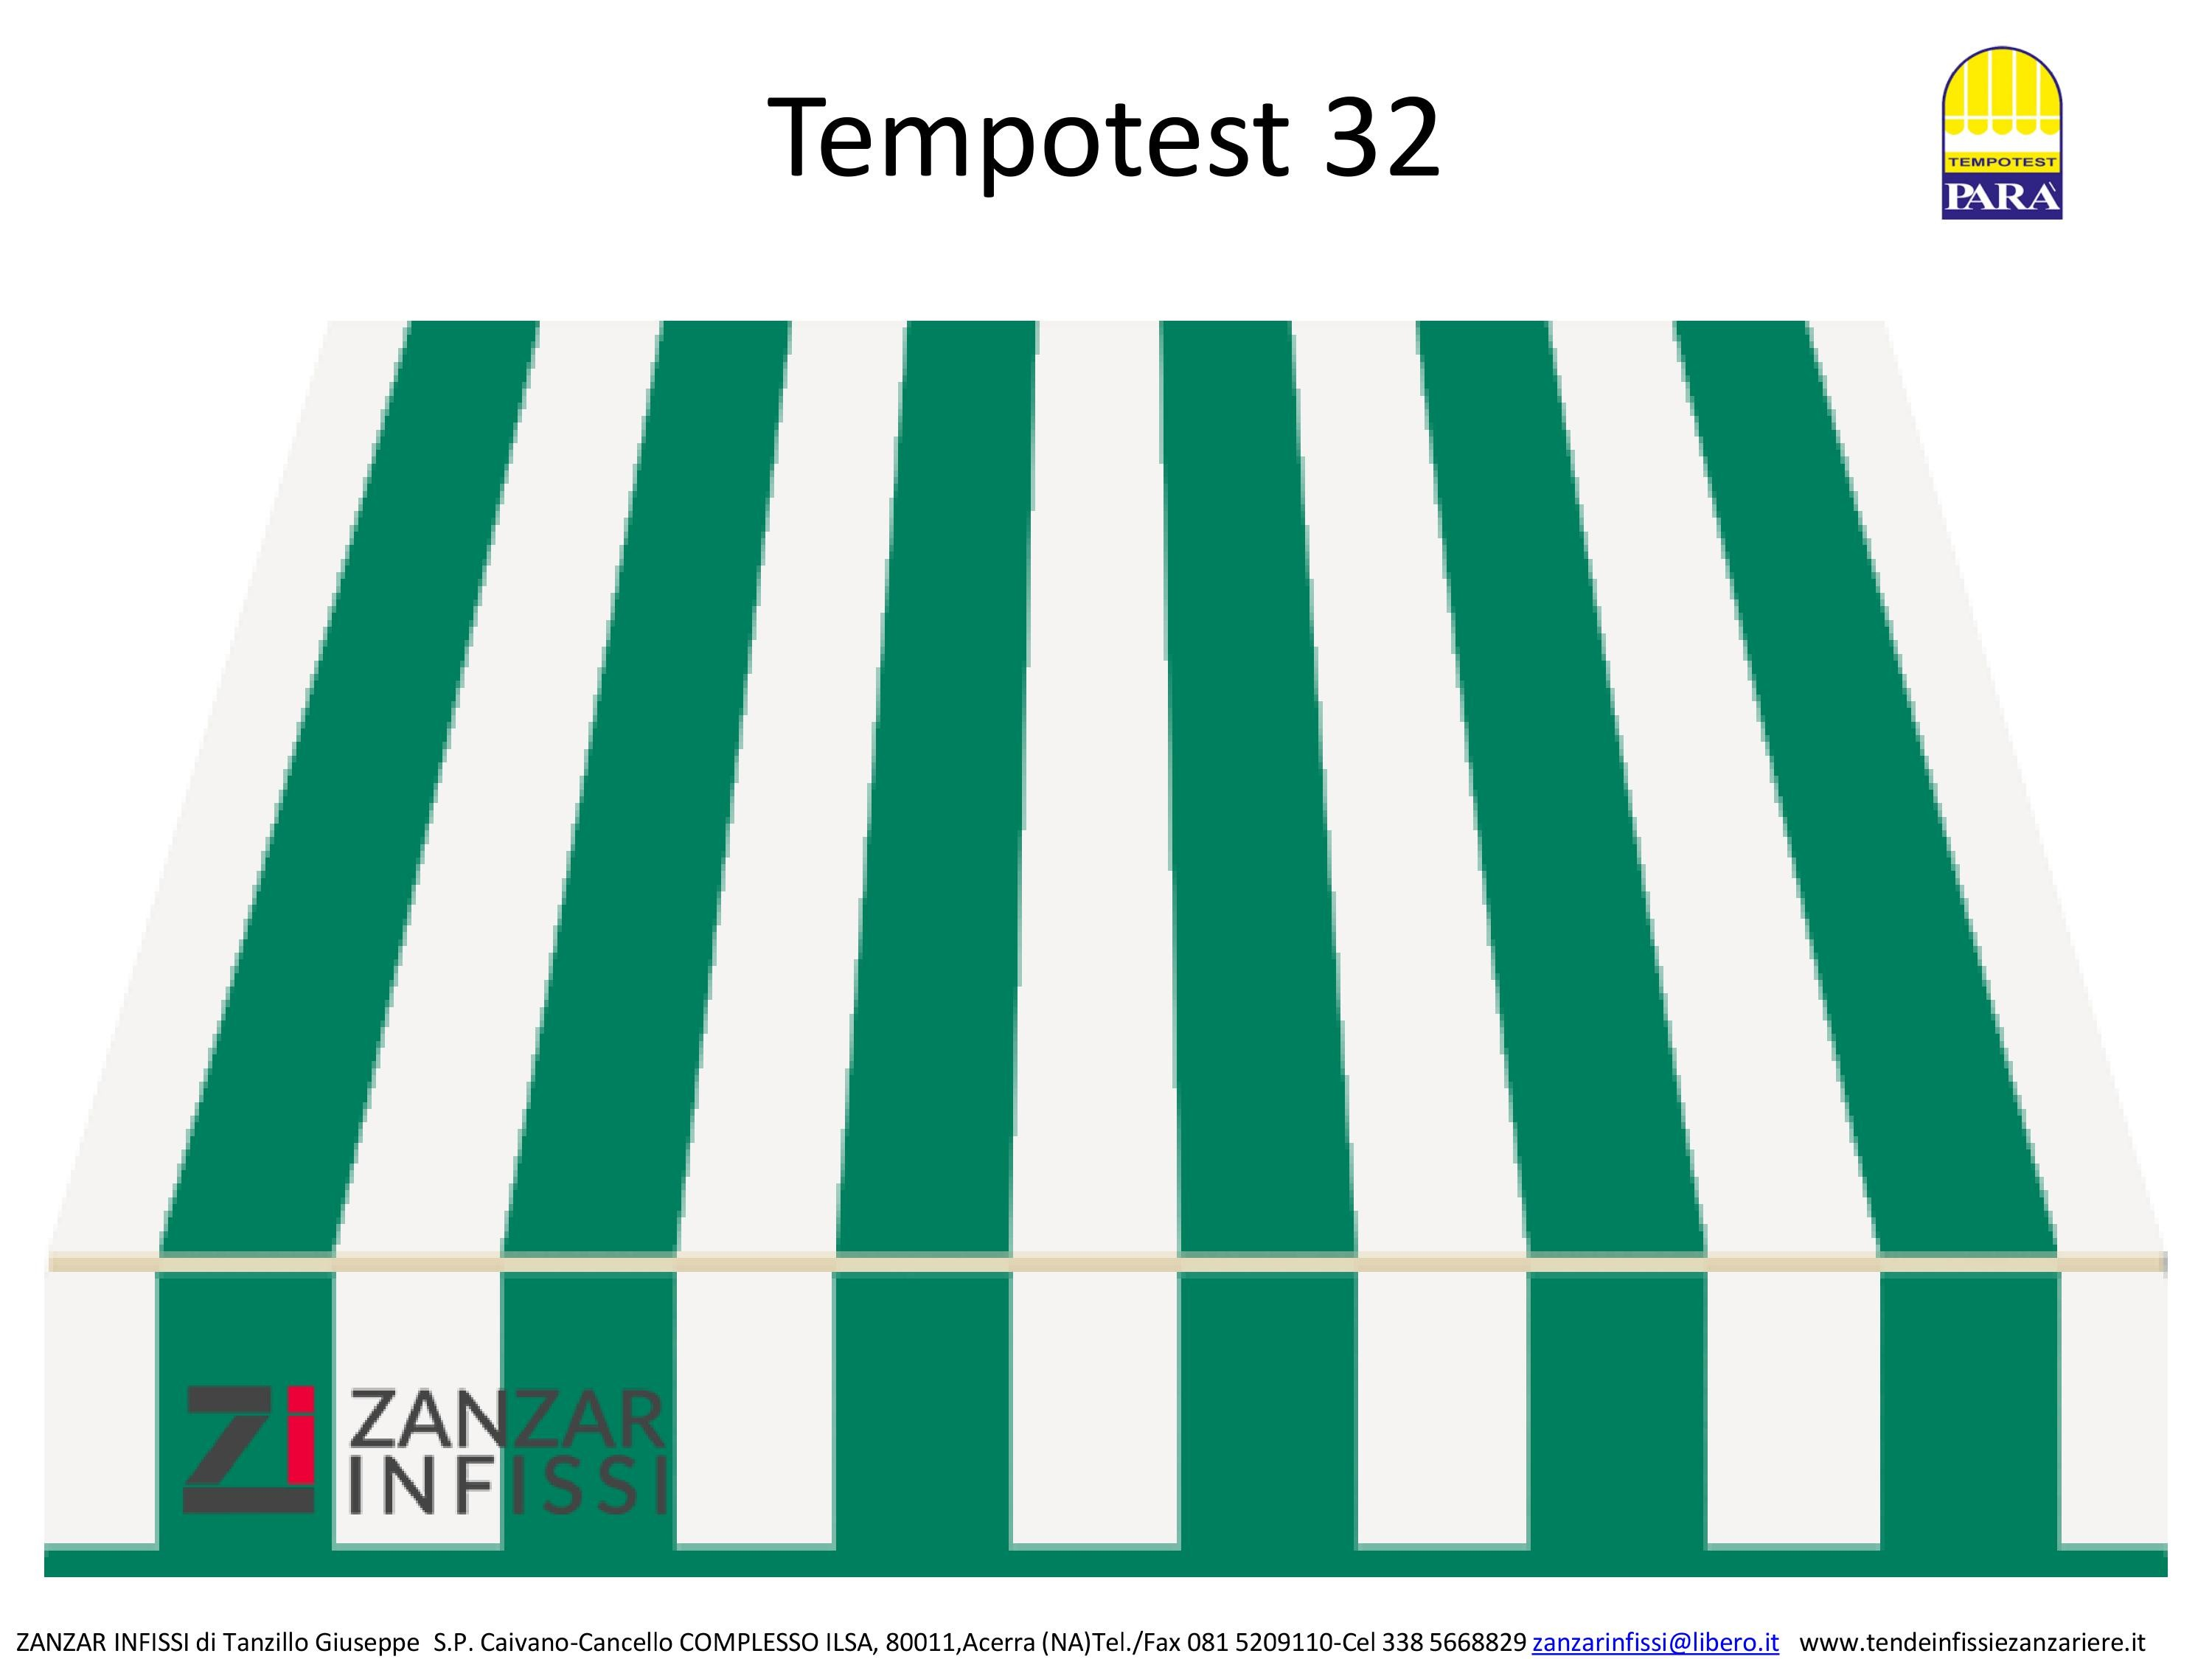 Tempotest 32